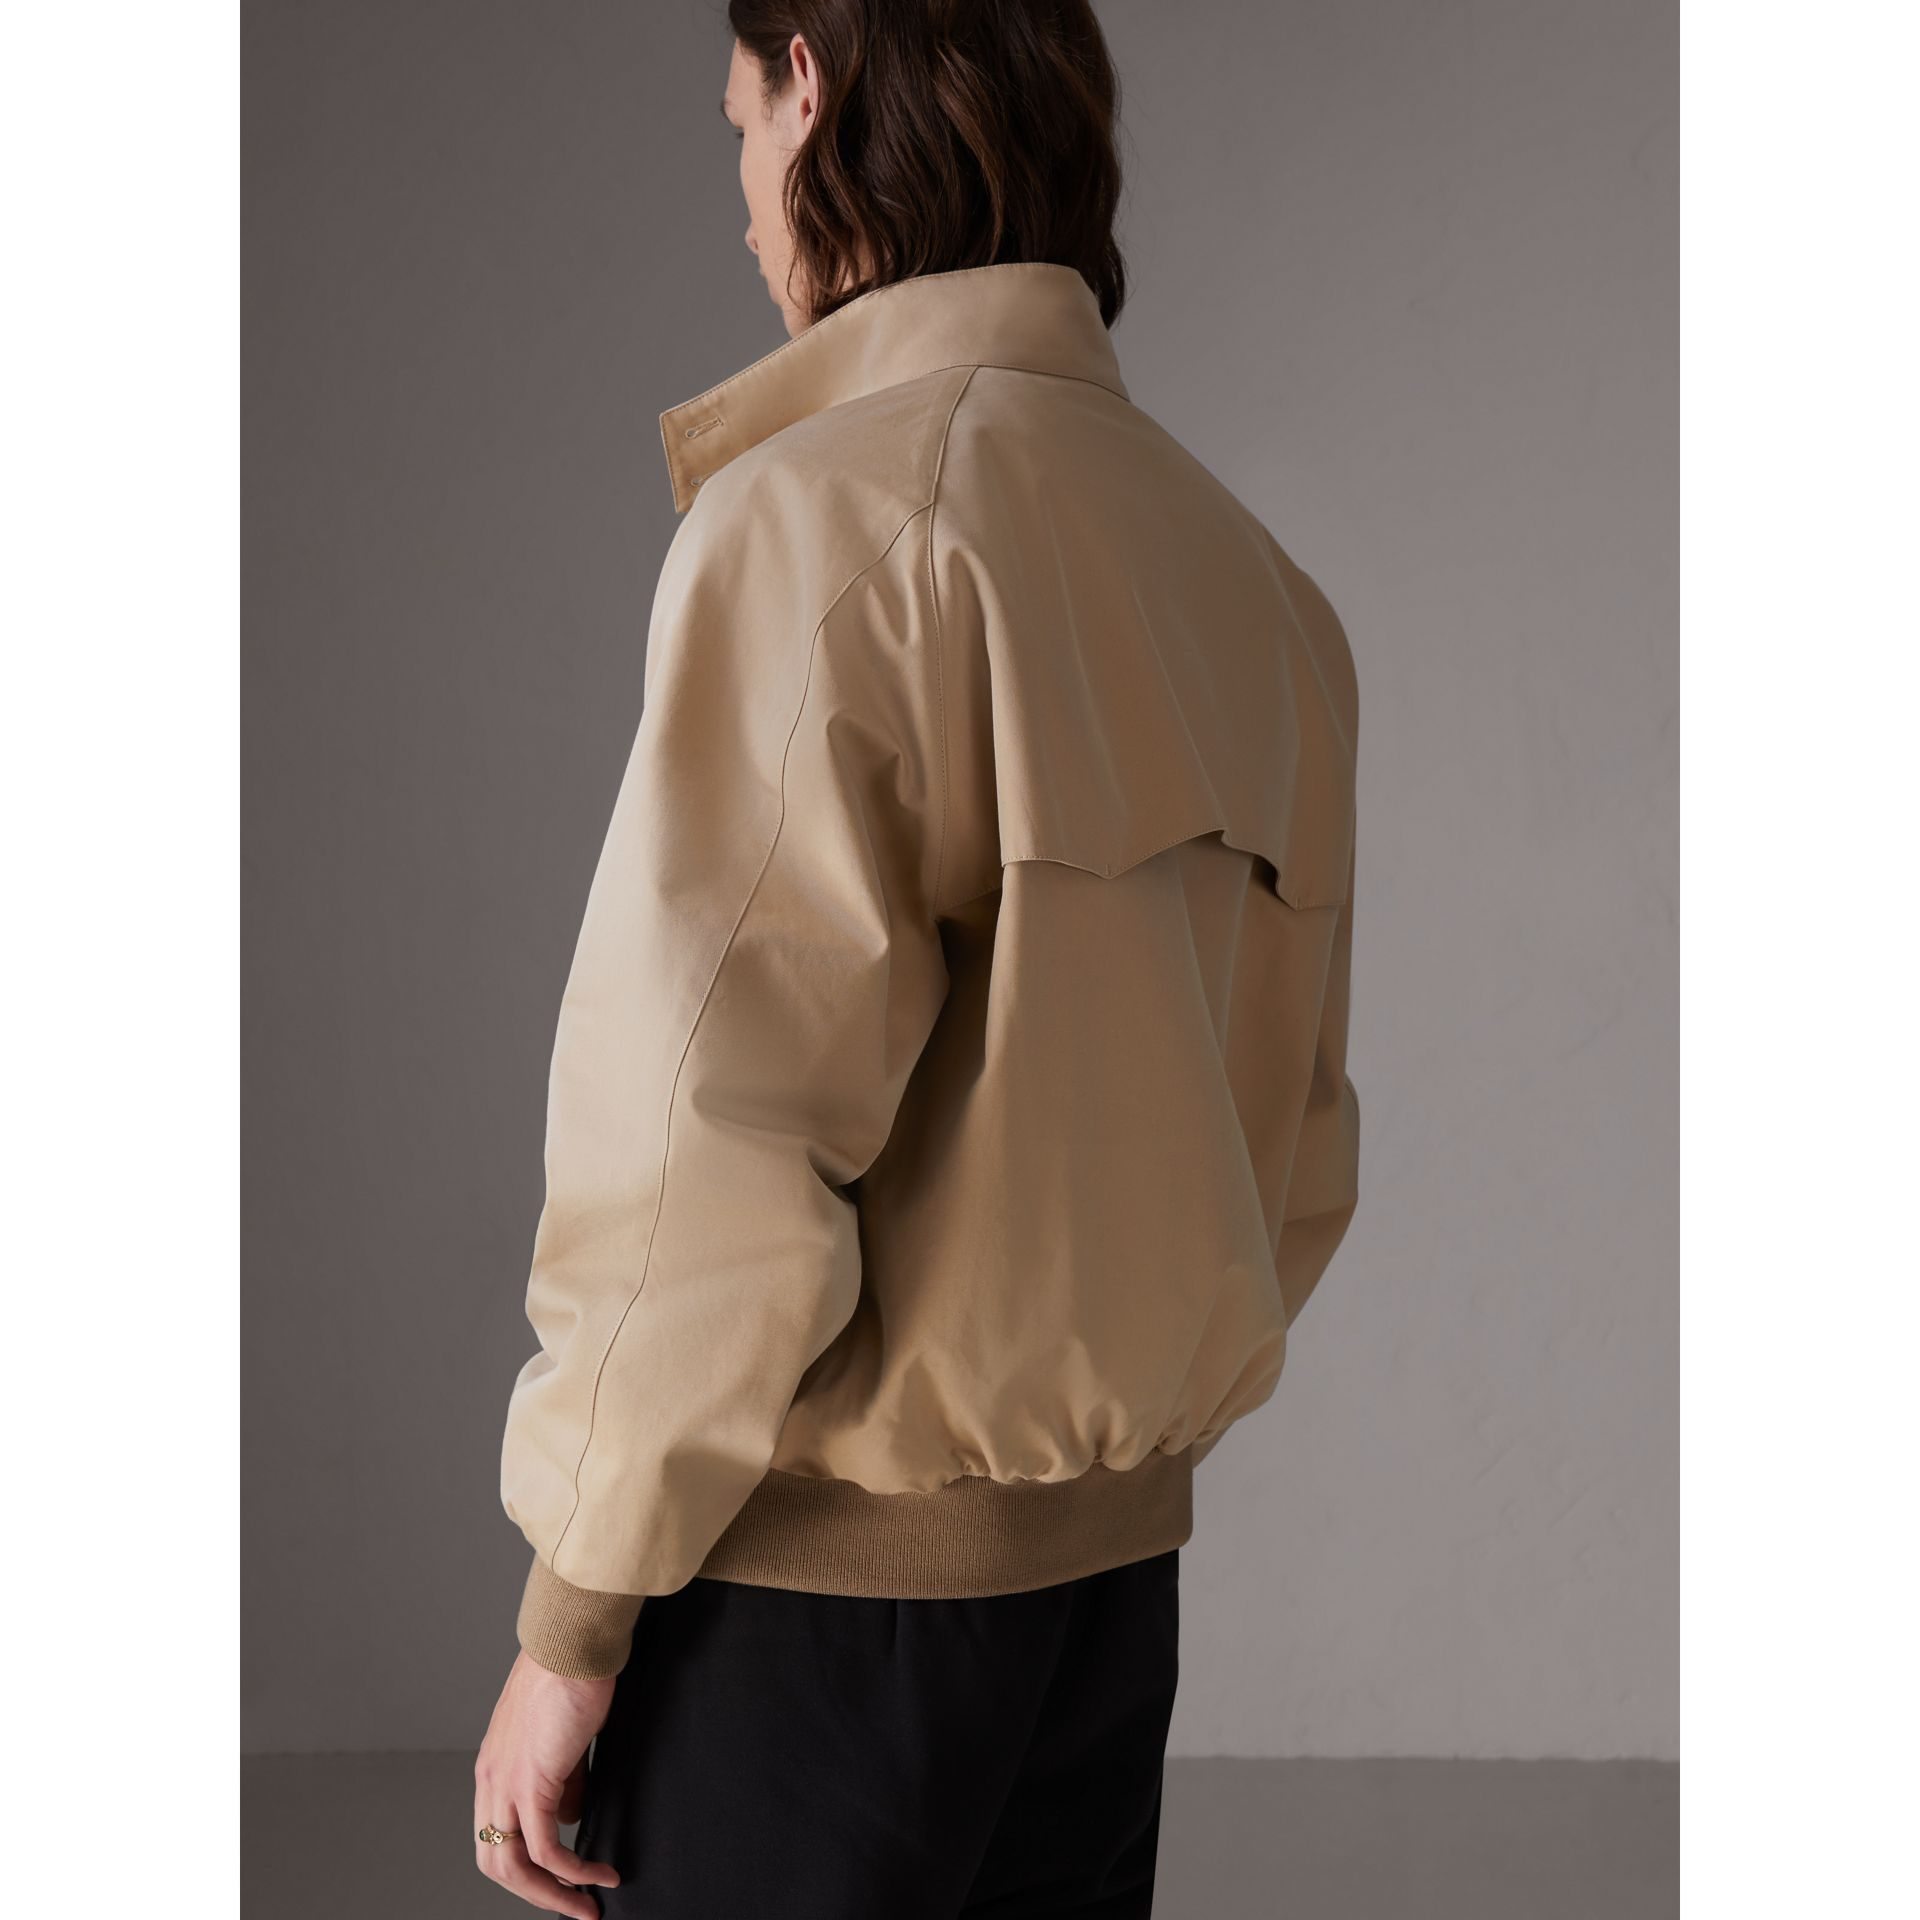 Gosha x Burberry Reversible Harrington Jacket in Honey | Burberry - gallery image 7